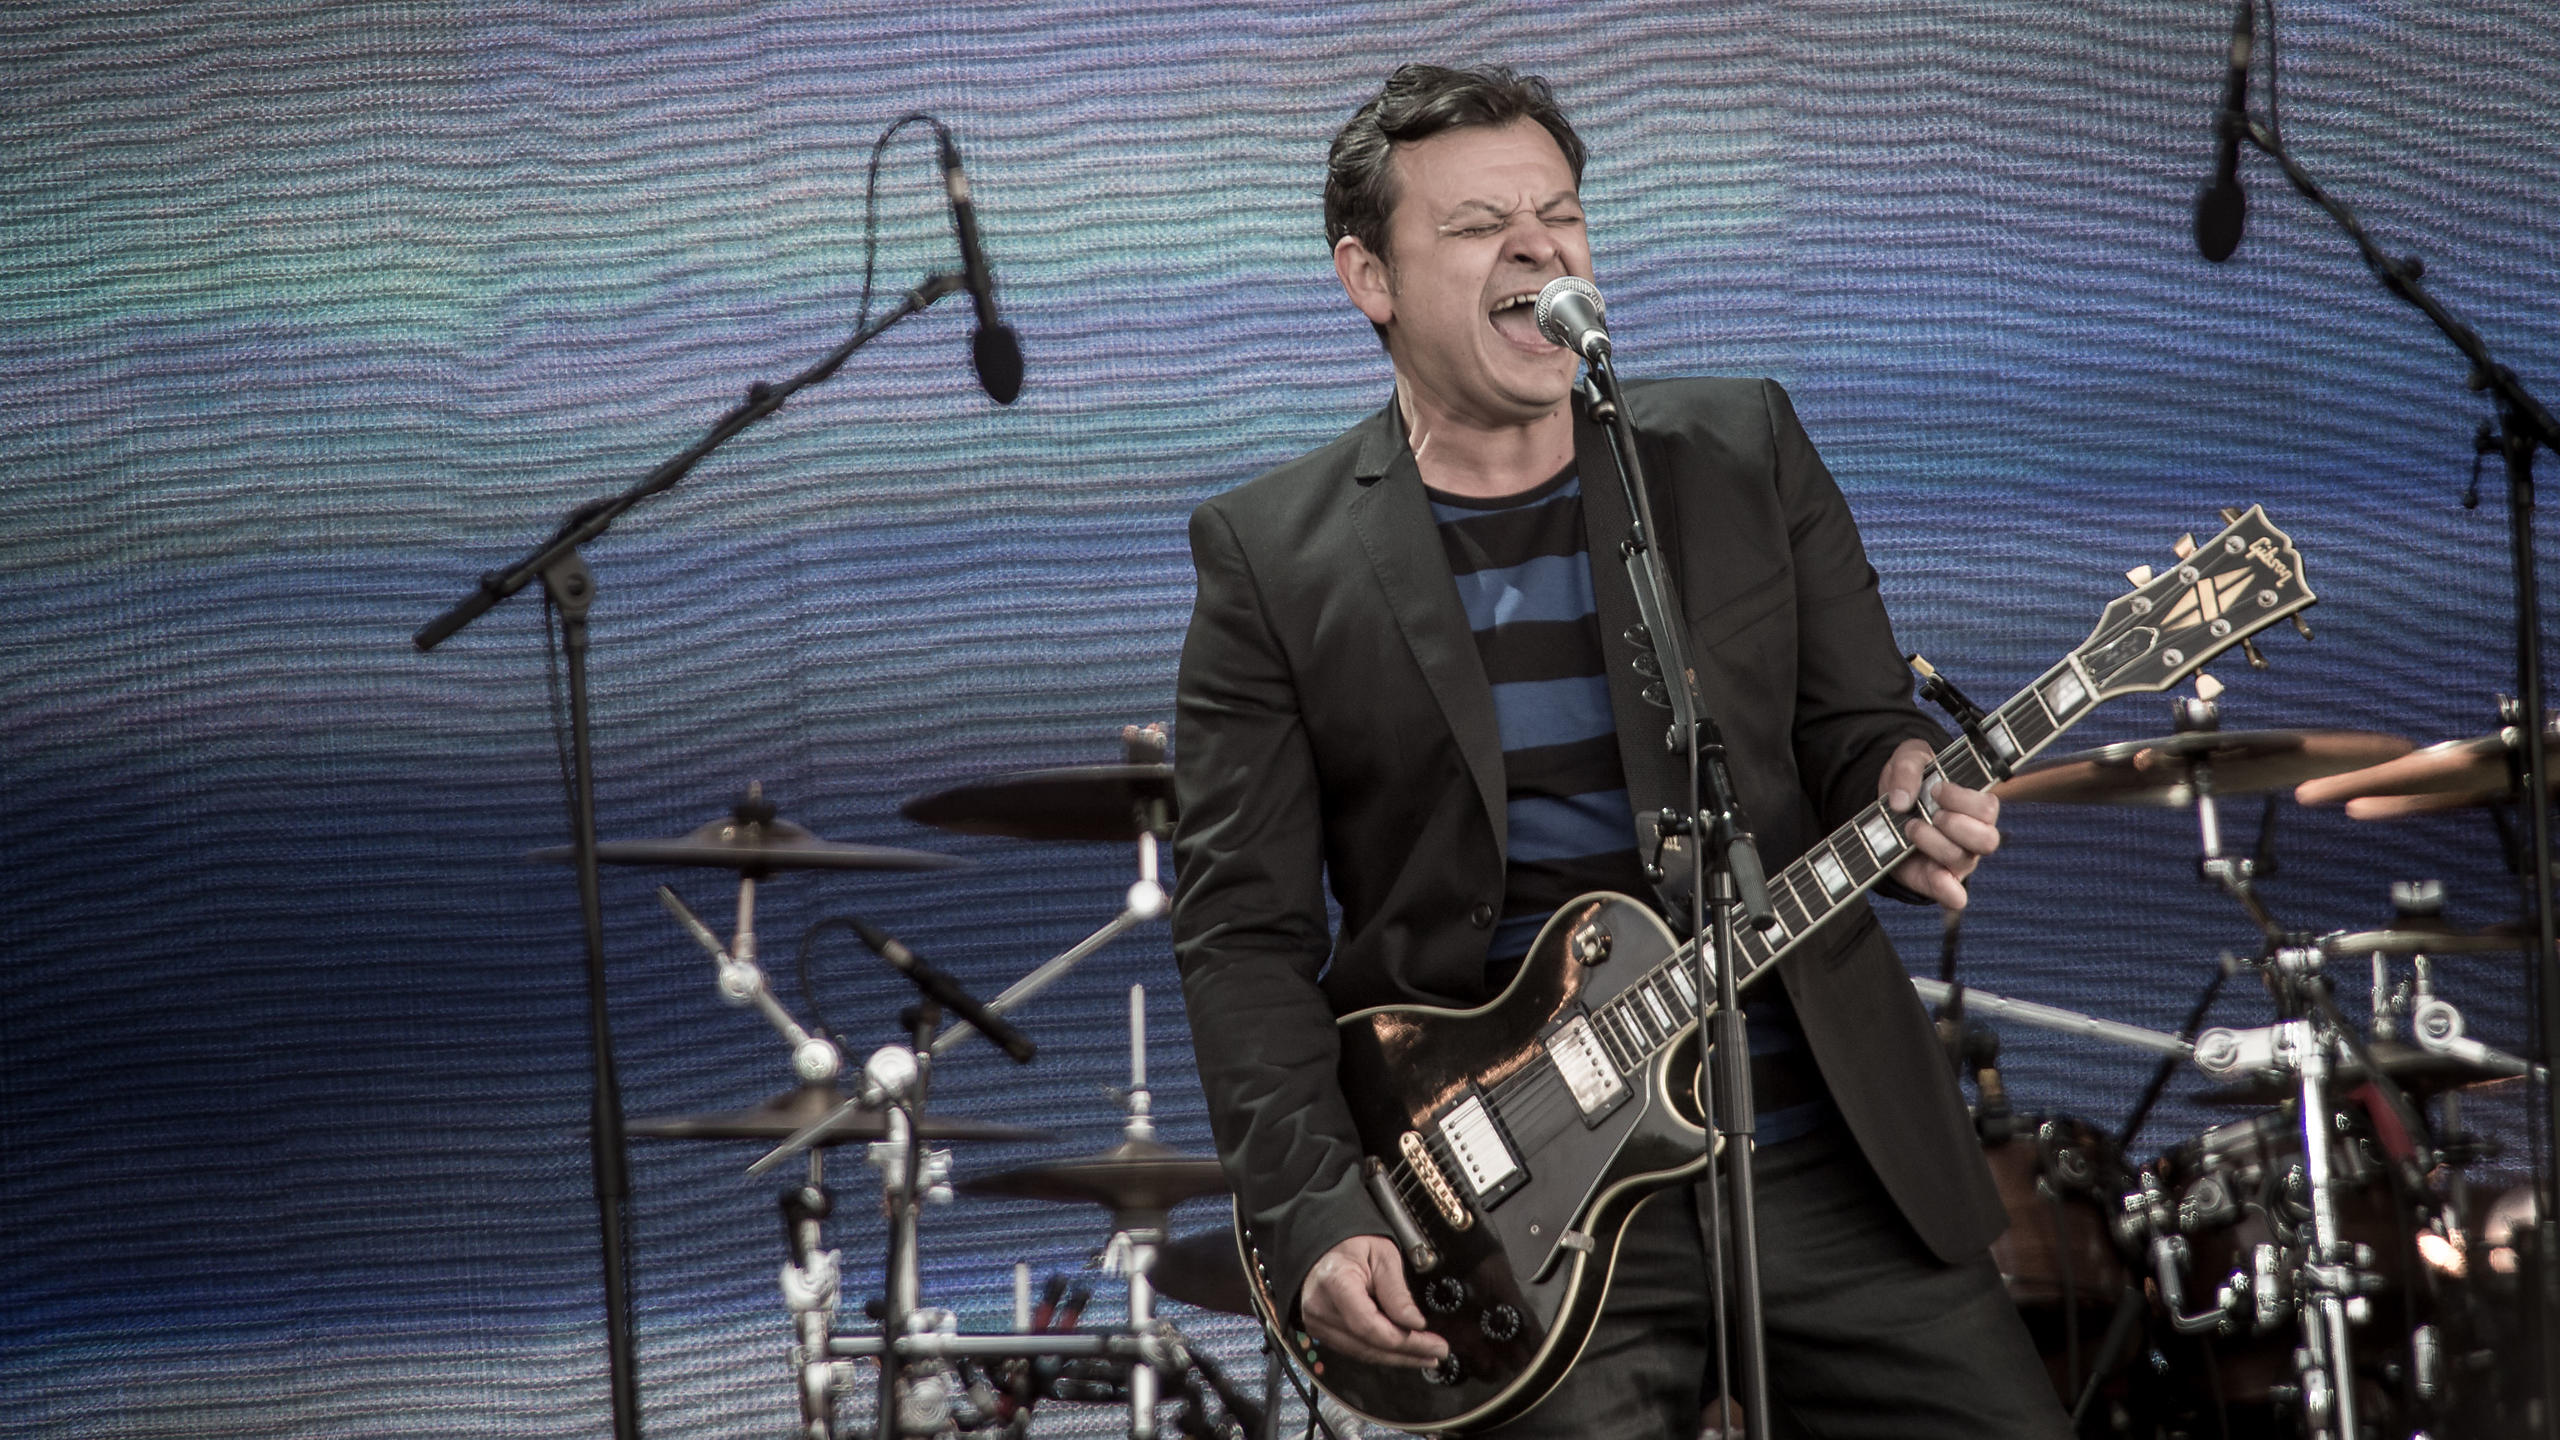 Manic Street Preachers playing Radio 2's Hyde Park Festival in a Day 2013